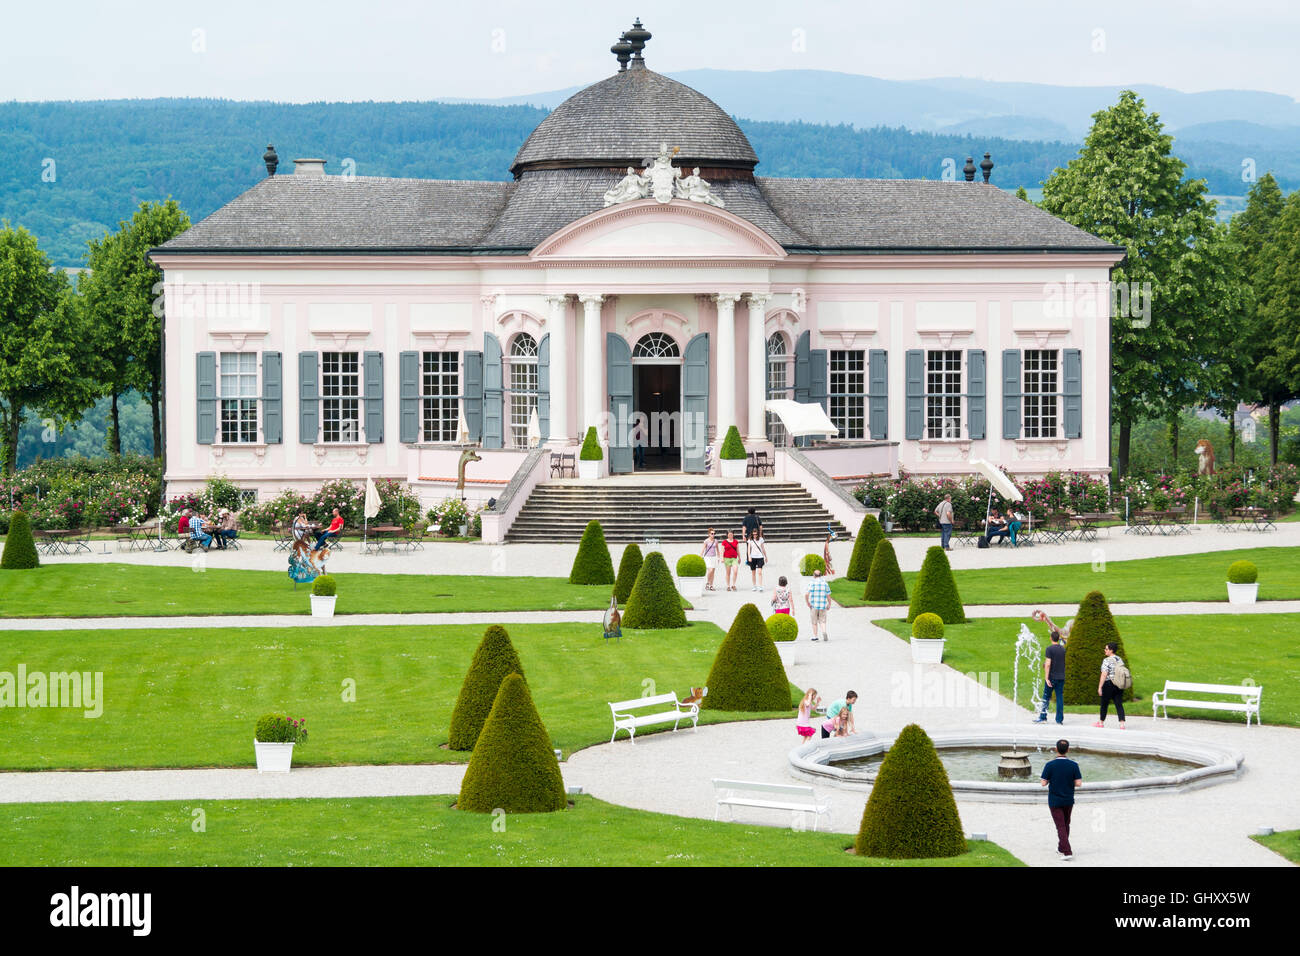 Baroque Garden Pavilion and people in park of Melk Abbey in Wachau Valley, Lower Austria - Stock Image